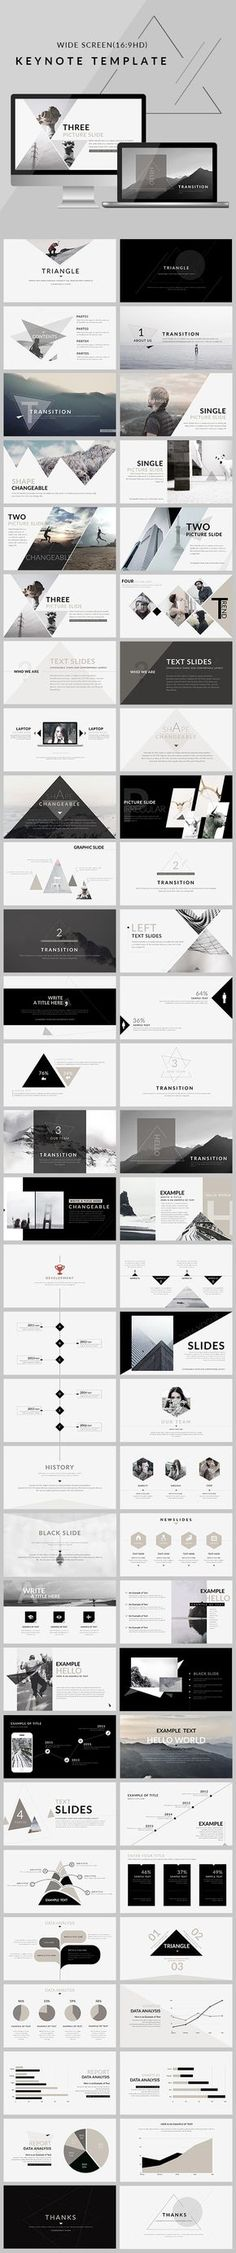 Master Keynote Template Power point templates, Presentation - keynote template